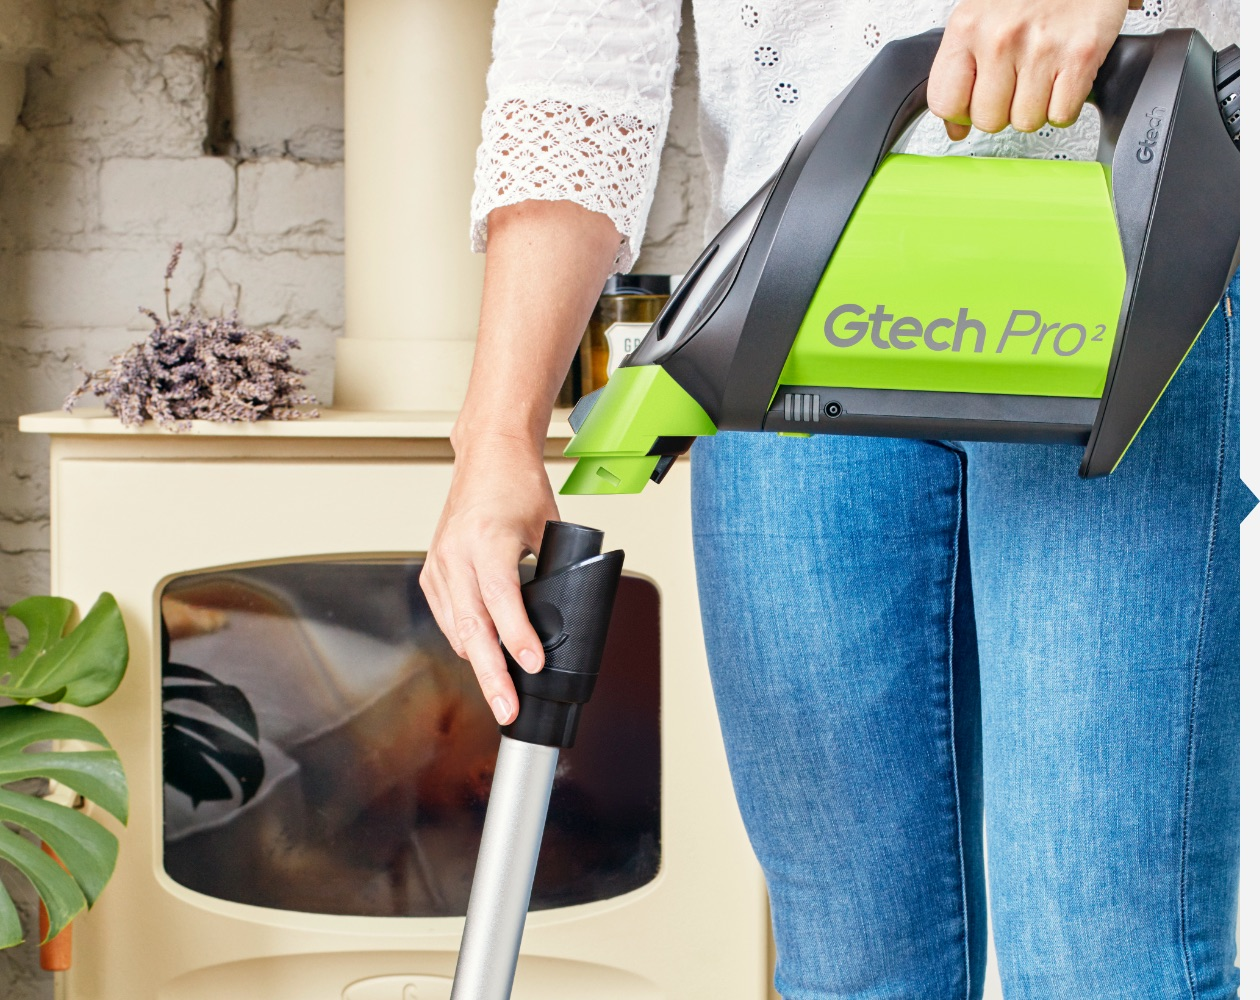 Pro 2 vacuum cleaner with bags